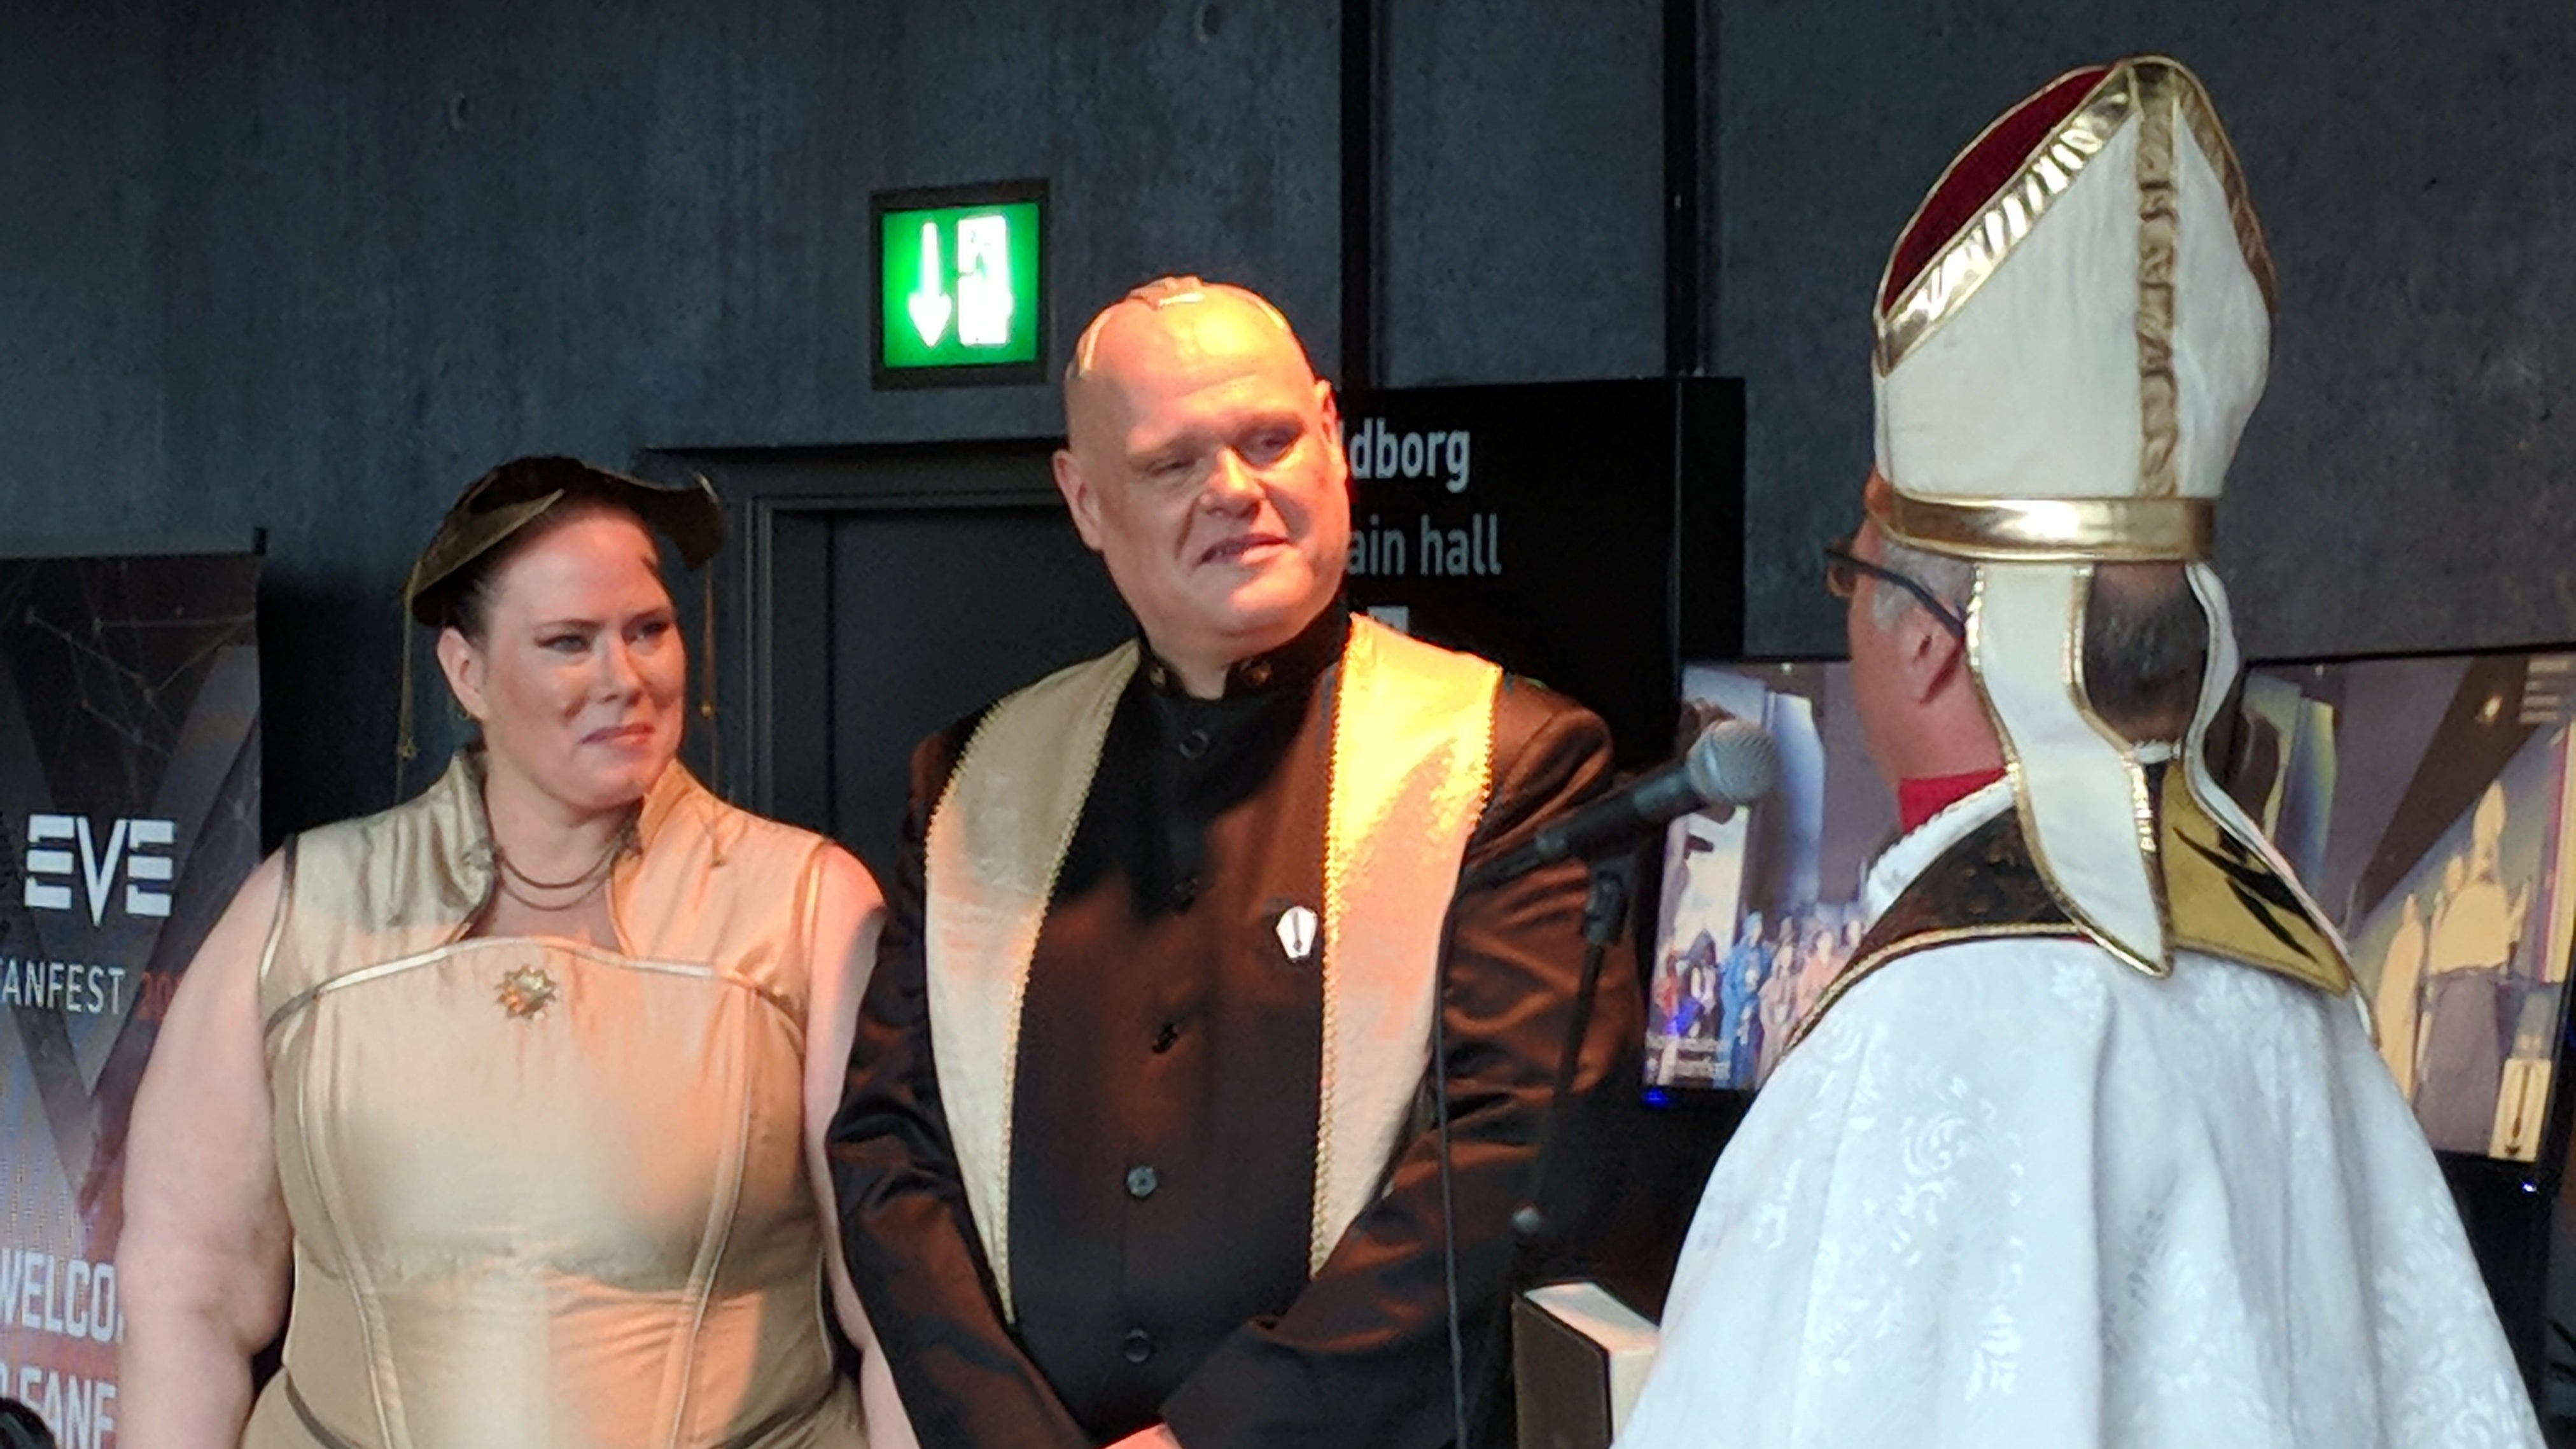 'Space Pope' Officiates Wedding At EVE Fanfest